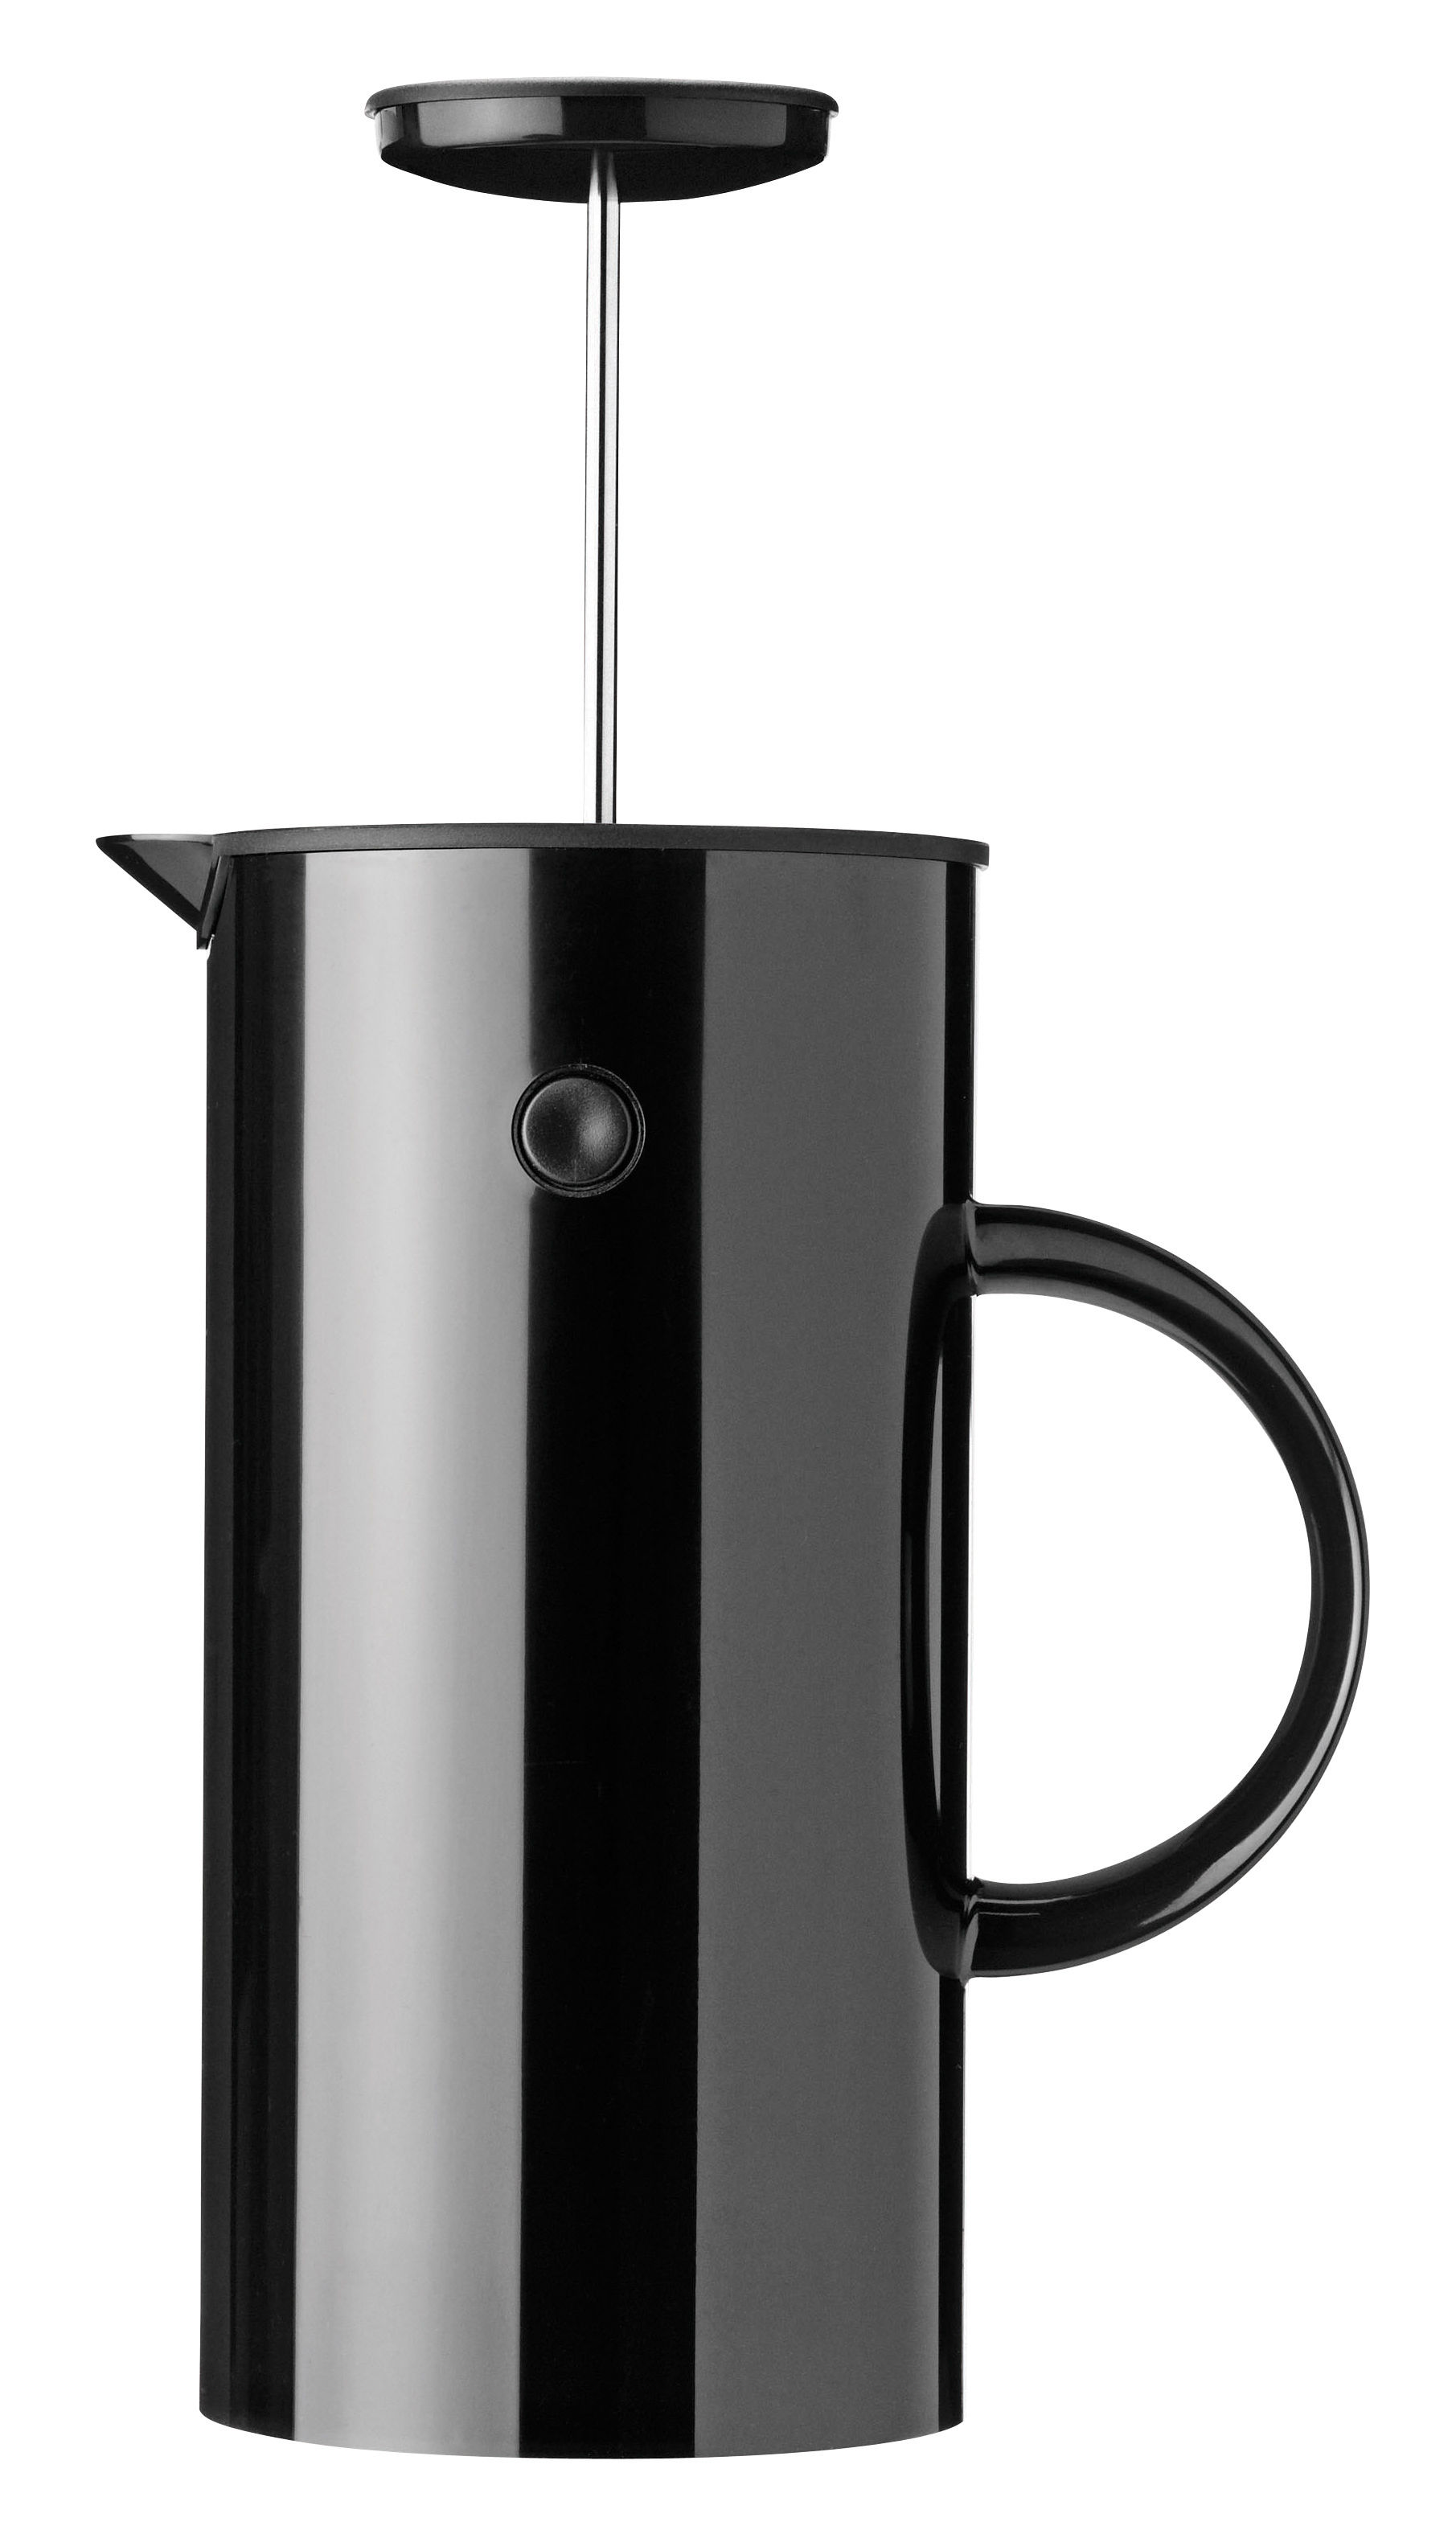 Coffee Maker Alarm Clock Radio : Classic Coffee maker - 8 cups Black by Stelton